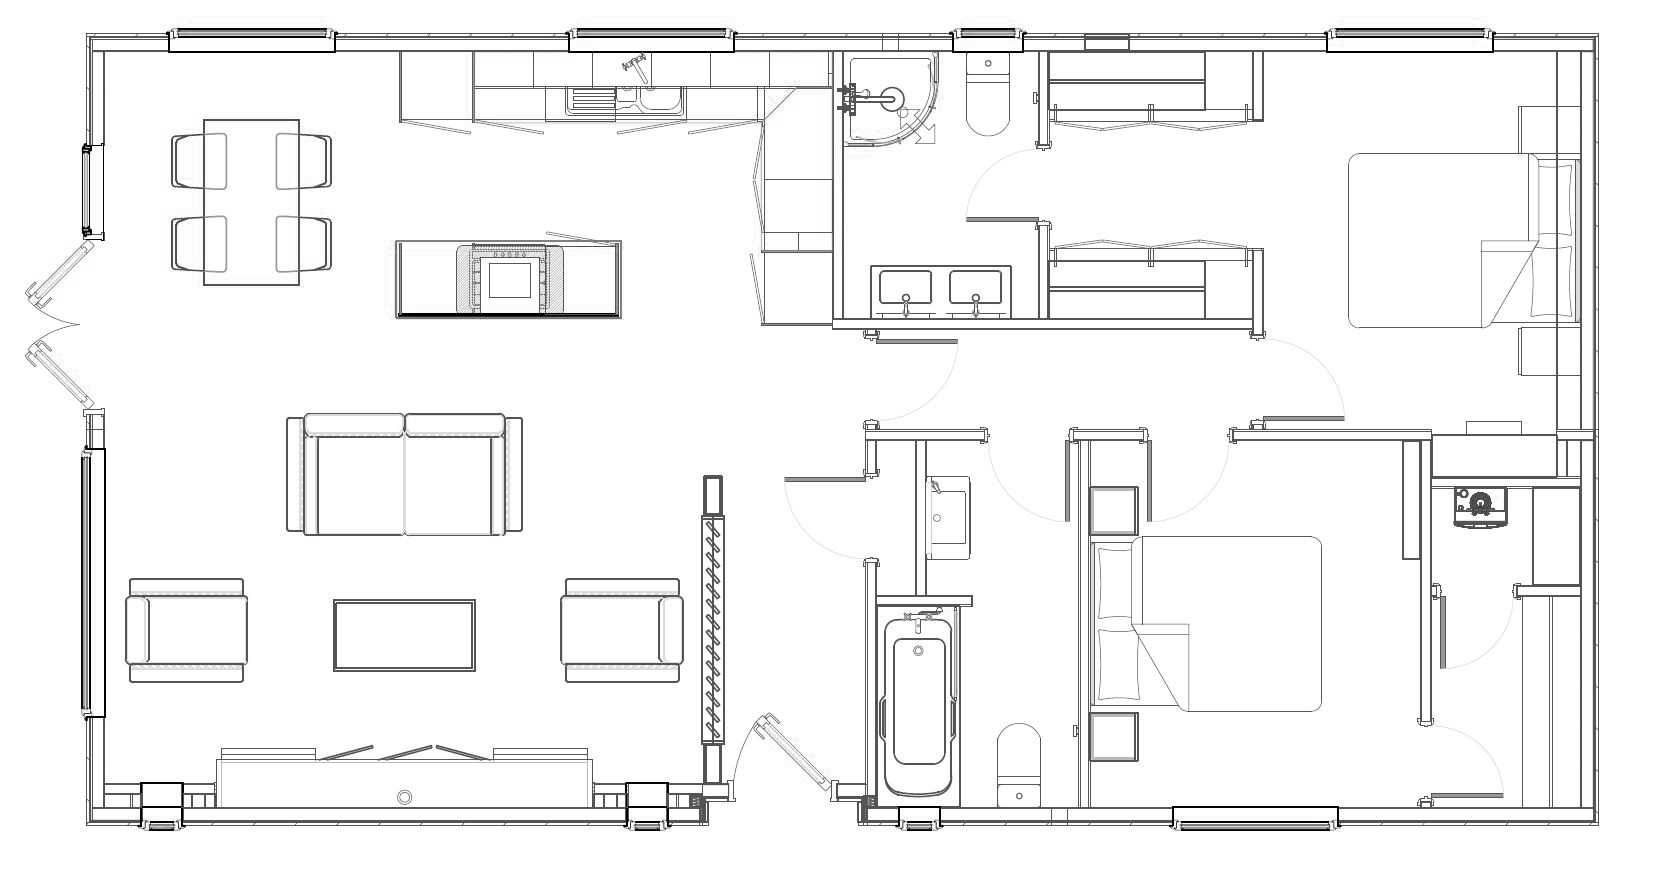 2 bed Bella Vista Lodge Floorplan